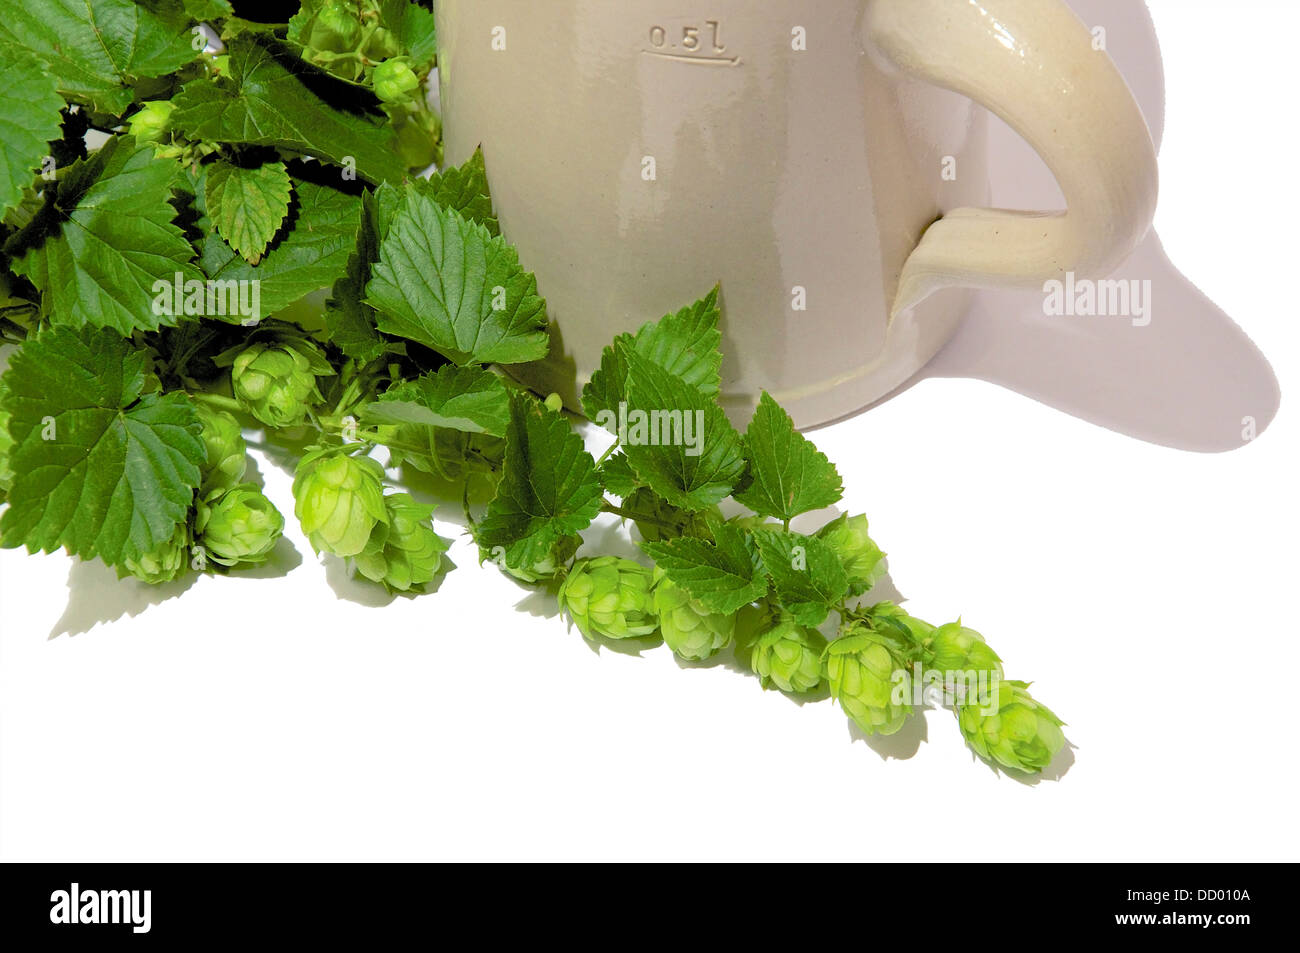 Traditional Stein Beer Mug with fresh twigs of Hops, one of beers main ingredients. Isolated on white. - Stock Image